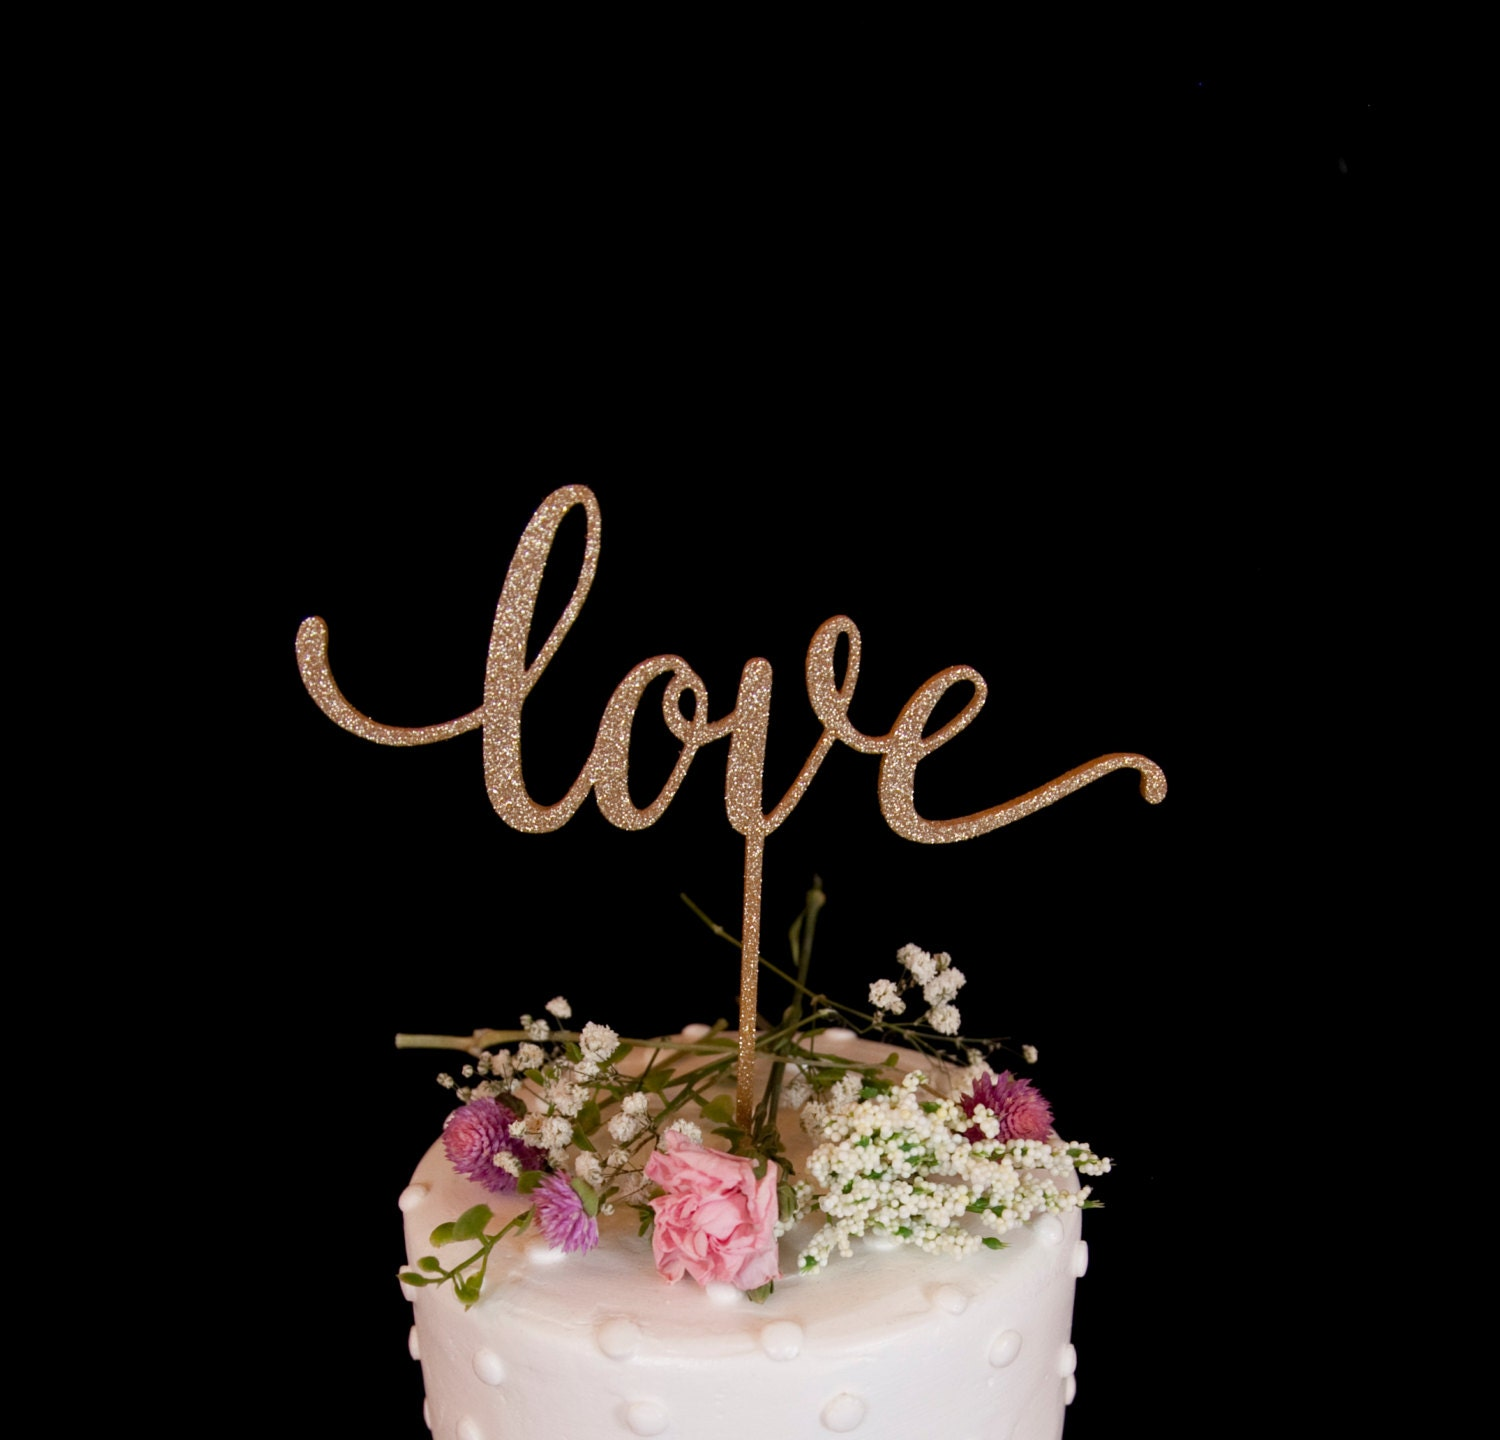 glitter wedding cake topper wedding cake topper glitter gold by haymadeshop on etsy 14723